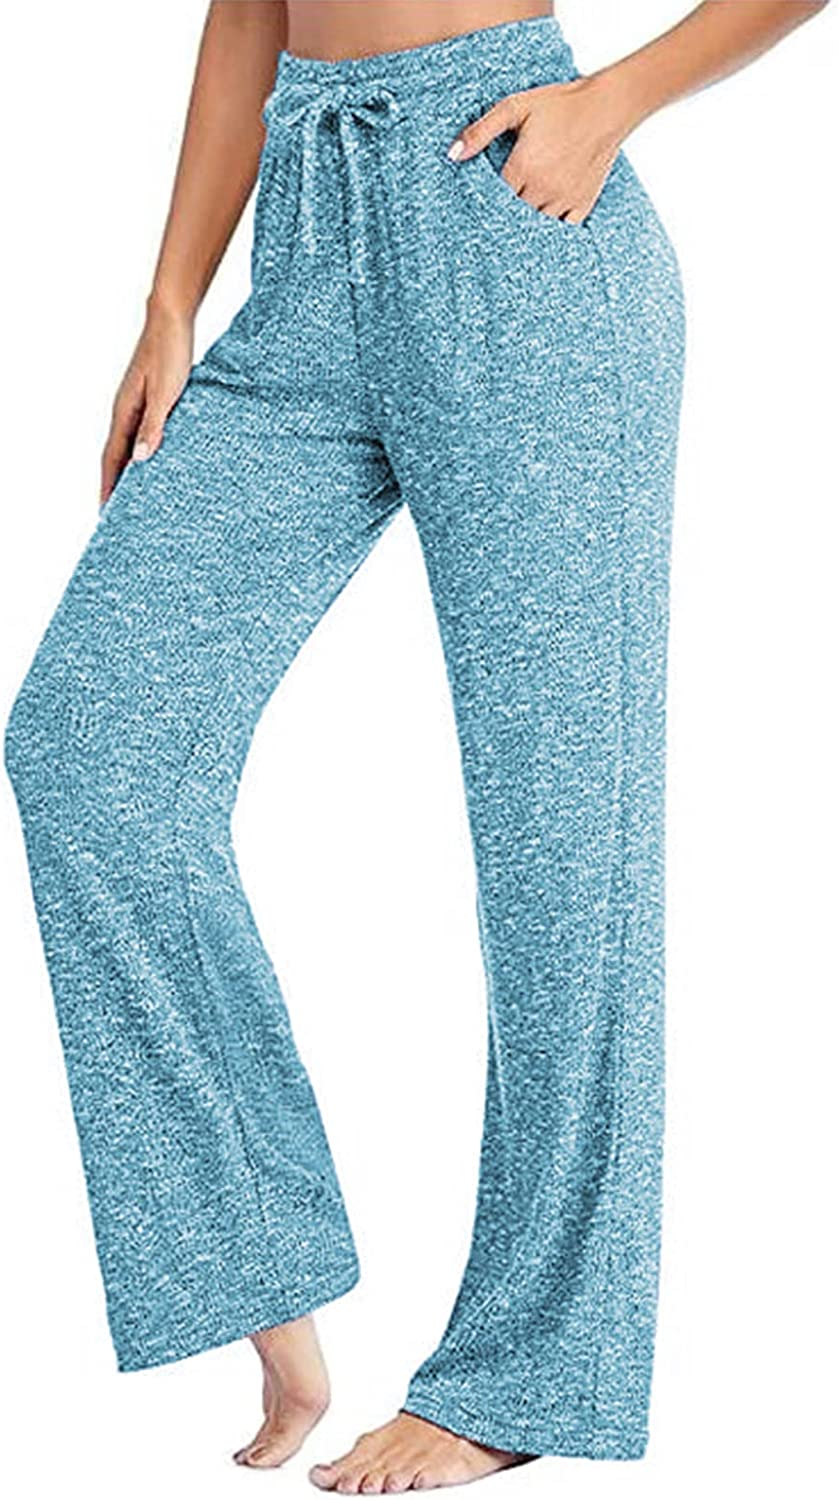 Womens Drawstring Yoga Pants Wide ! Super beauty product restock quality top! Flare Leg Palazzo Lounge Outlet ☆ Free Shipping